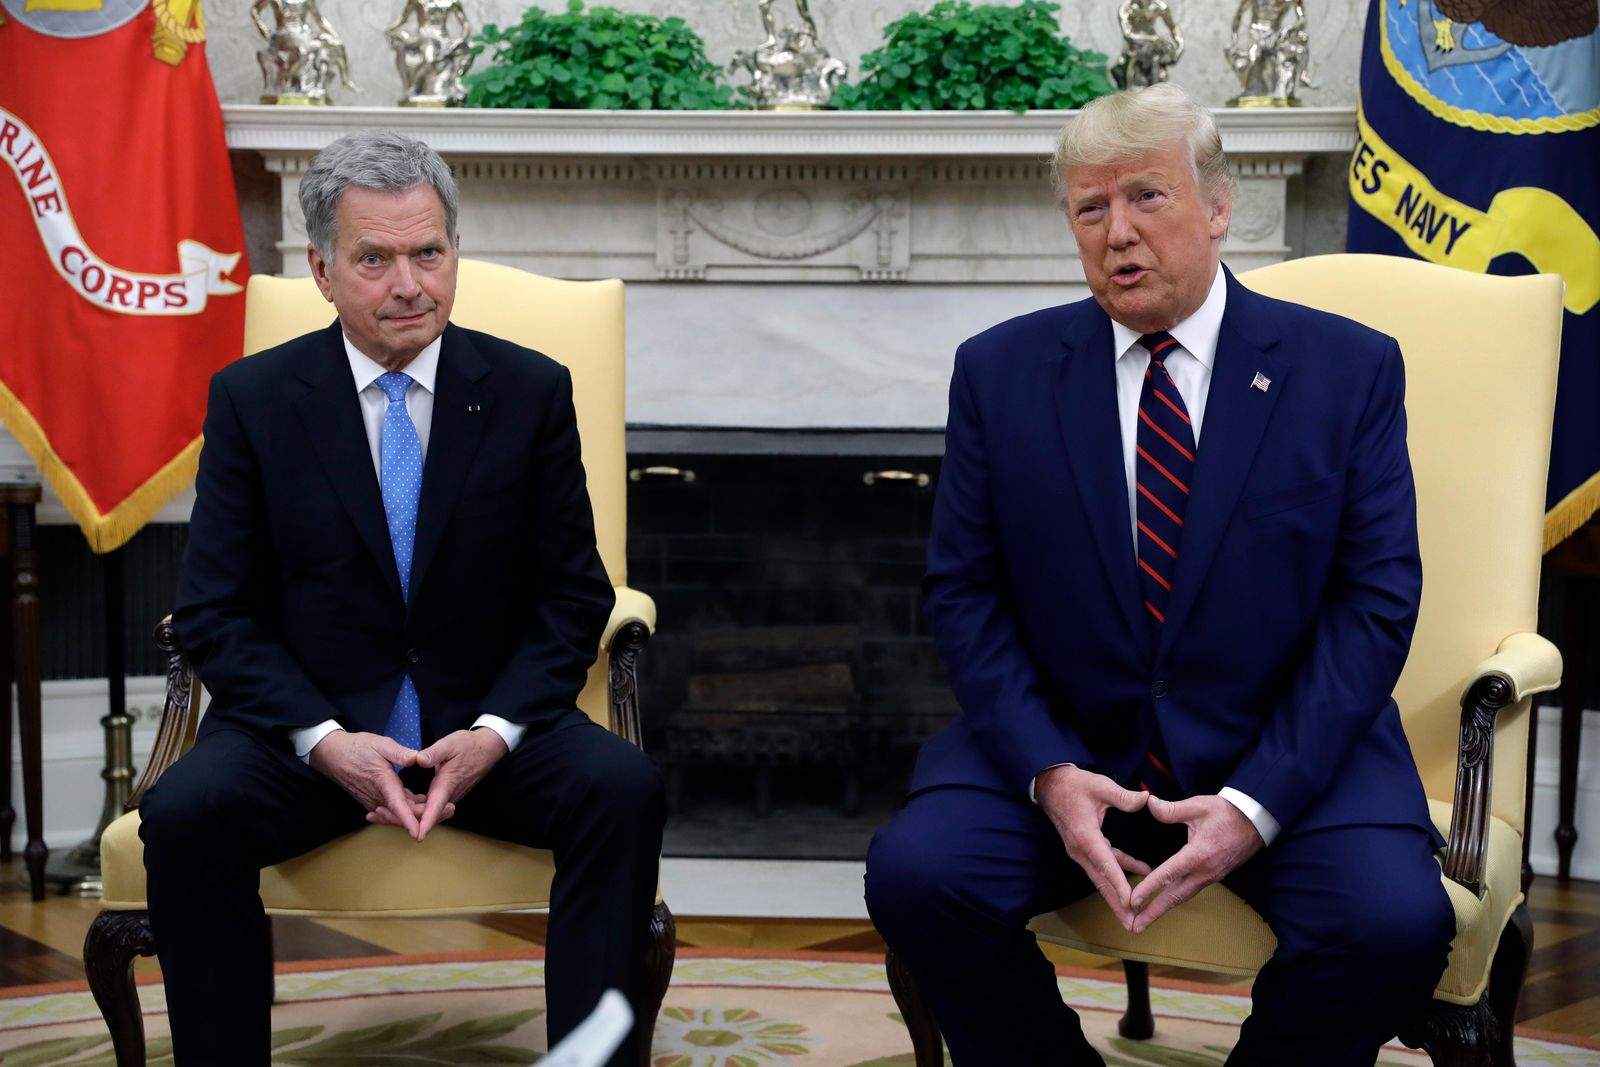 President Donald Trump meets Finnish President Sauli Niinisto in the Oval Office of the White House, Wednesday, Oct. 2, 2019, in Washington. (AP Photo/Evan Vucci)